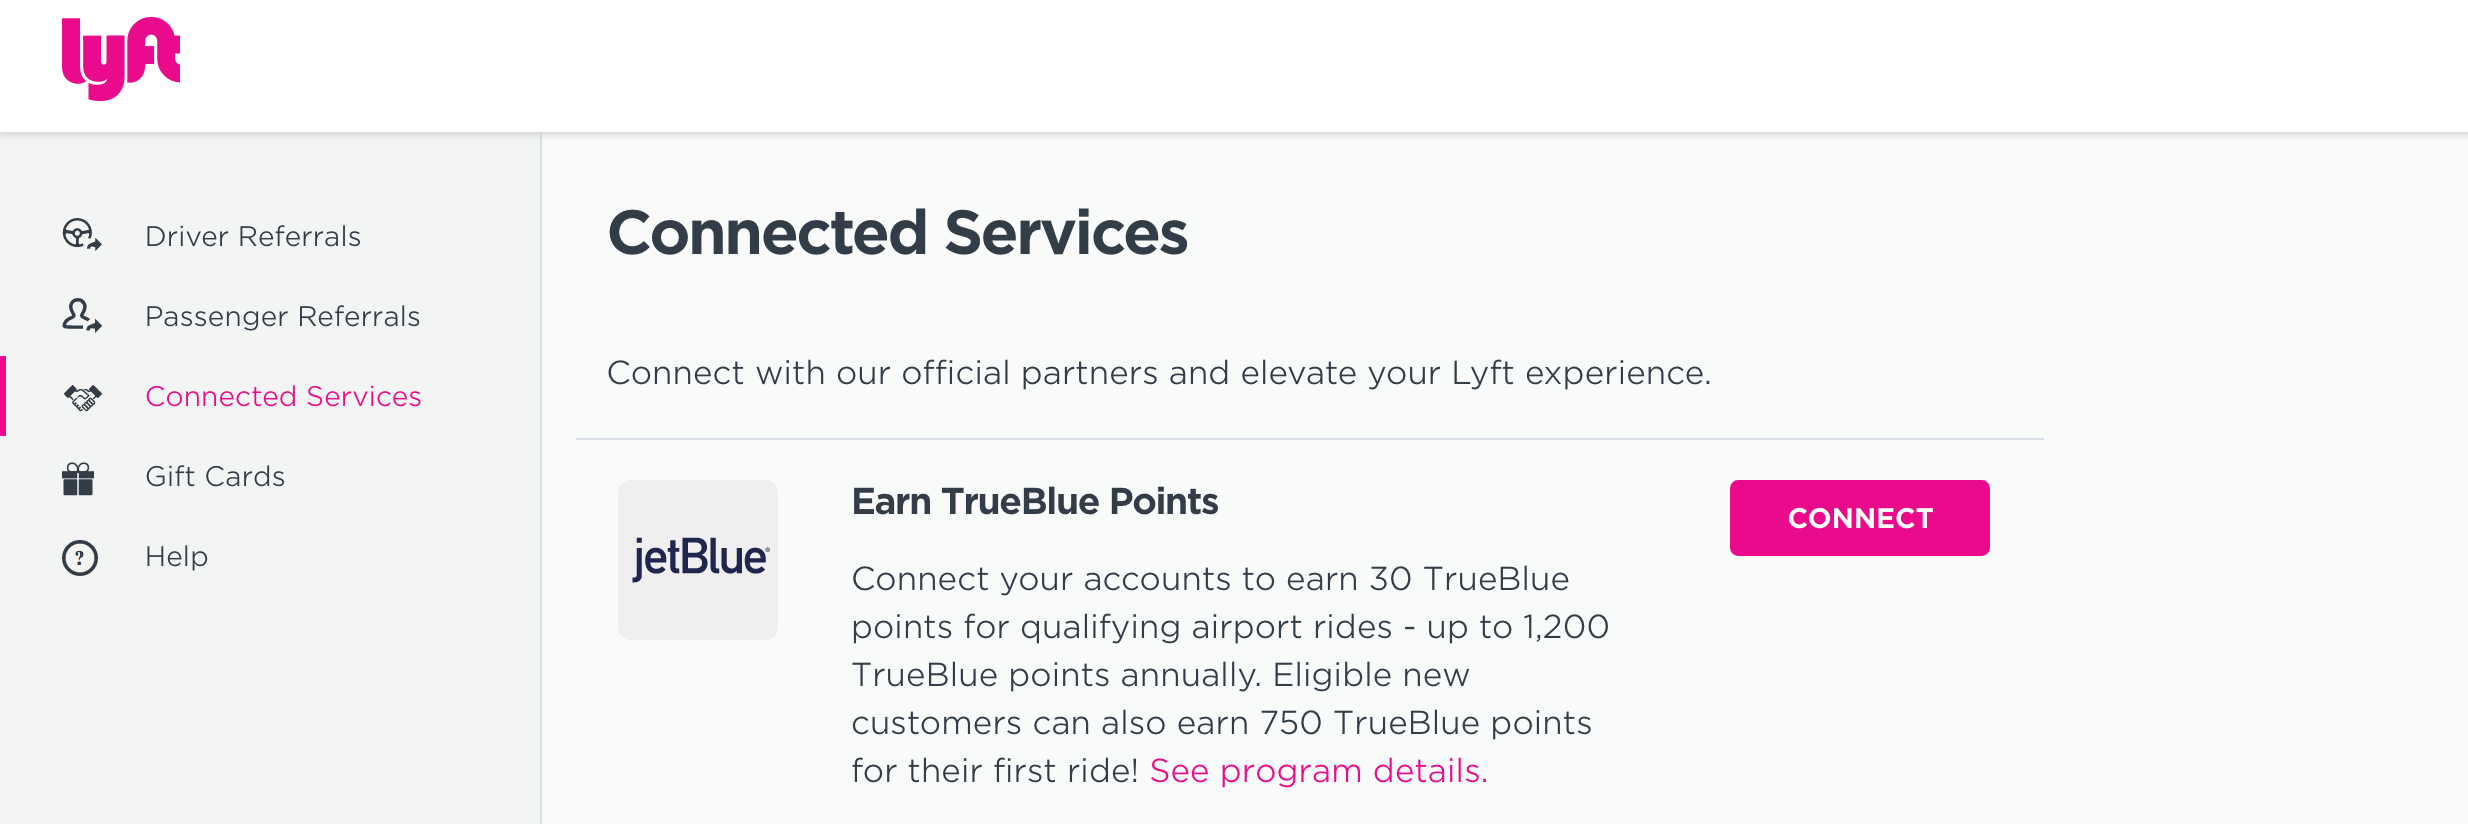 Tip Link Your JetBlue and Lyft Accounts for Bonus Points